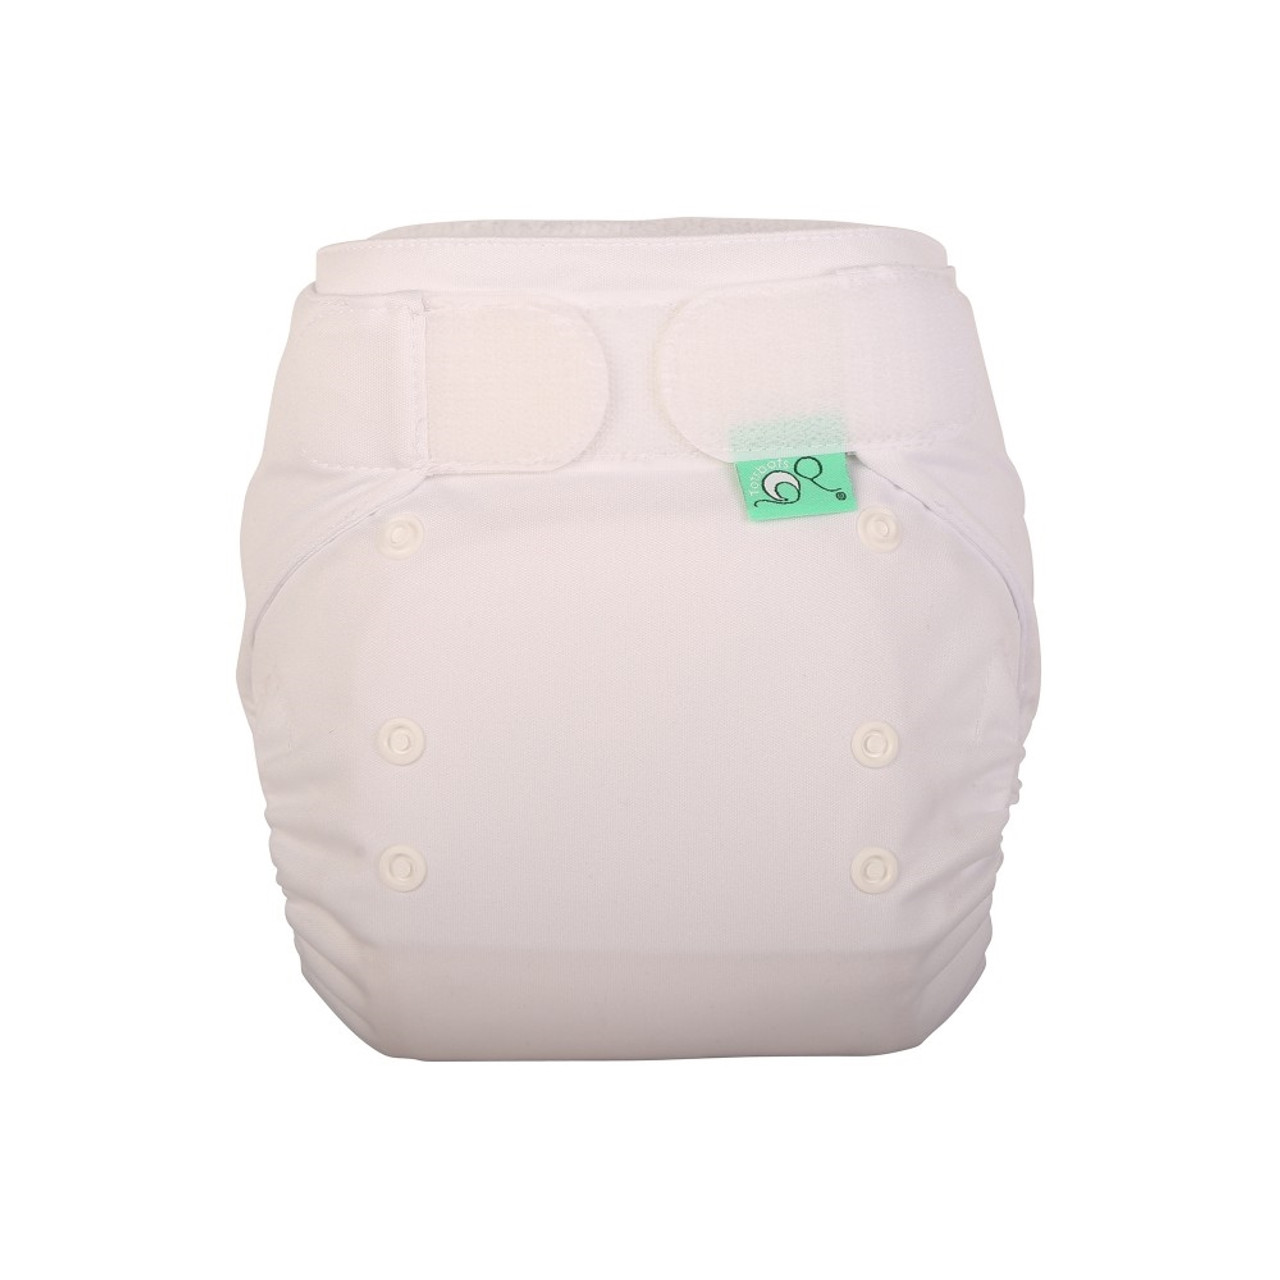 TotsBots Easyfit Cloth Diaper All-In-One